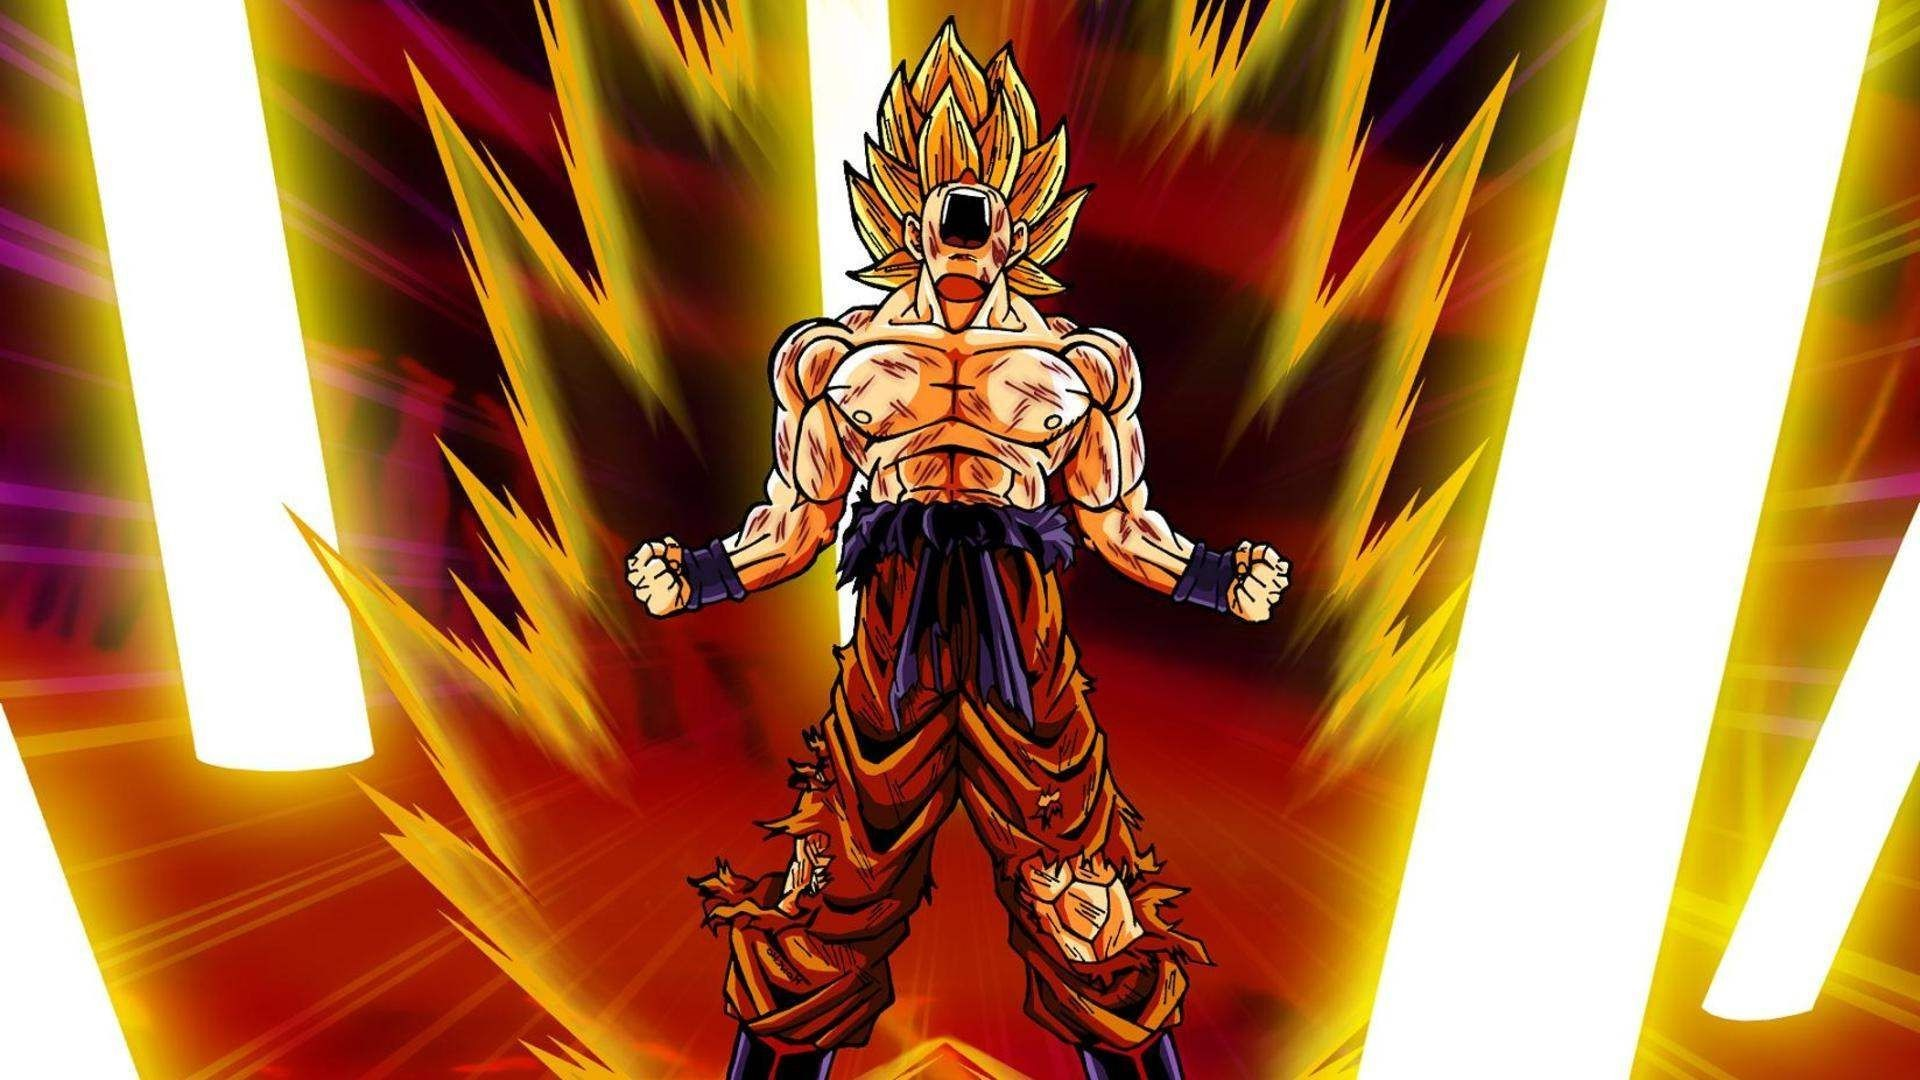 Dbz goku wallpapers wallpapertag - 3d wallpaper of dragon ball z ...